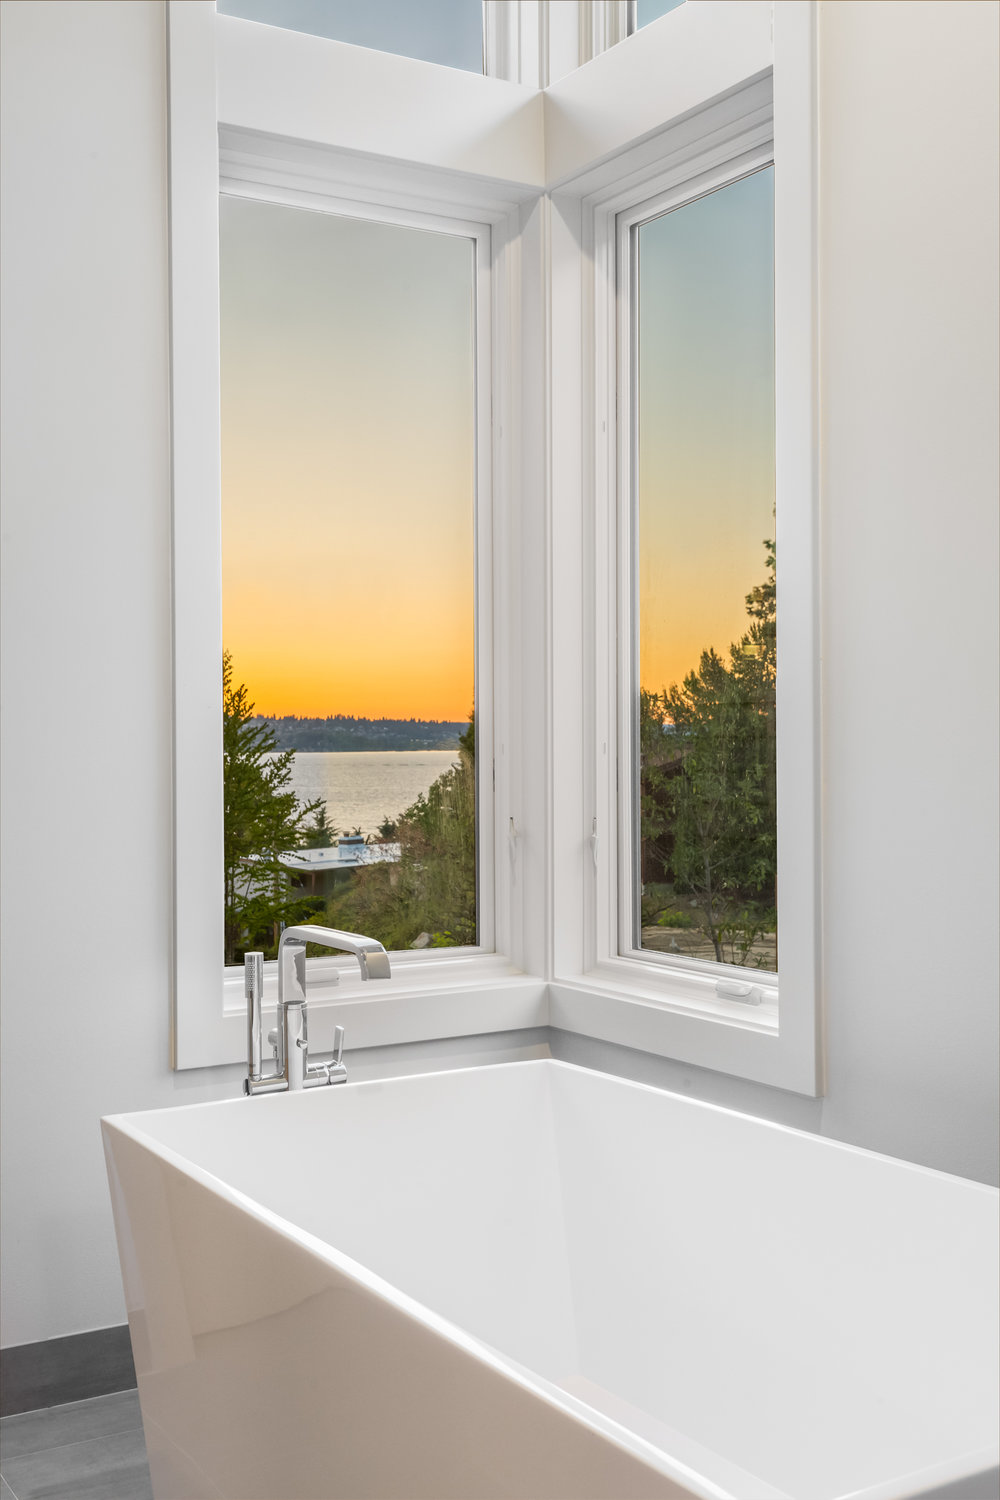 Lot 4 Tub Sunset.jpg